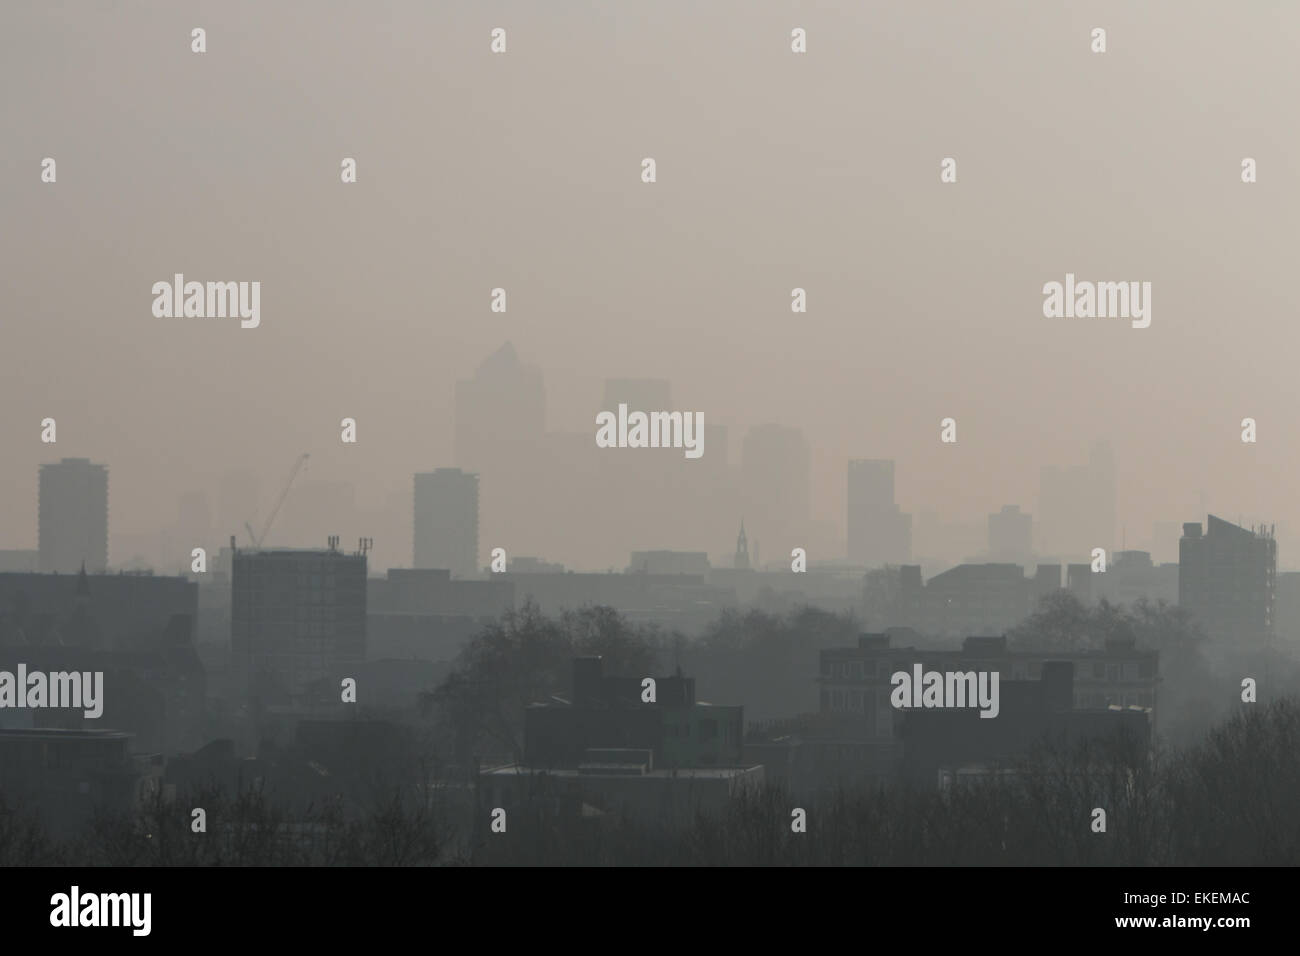 Image of pollution in London - Stock Image